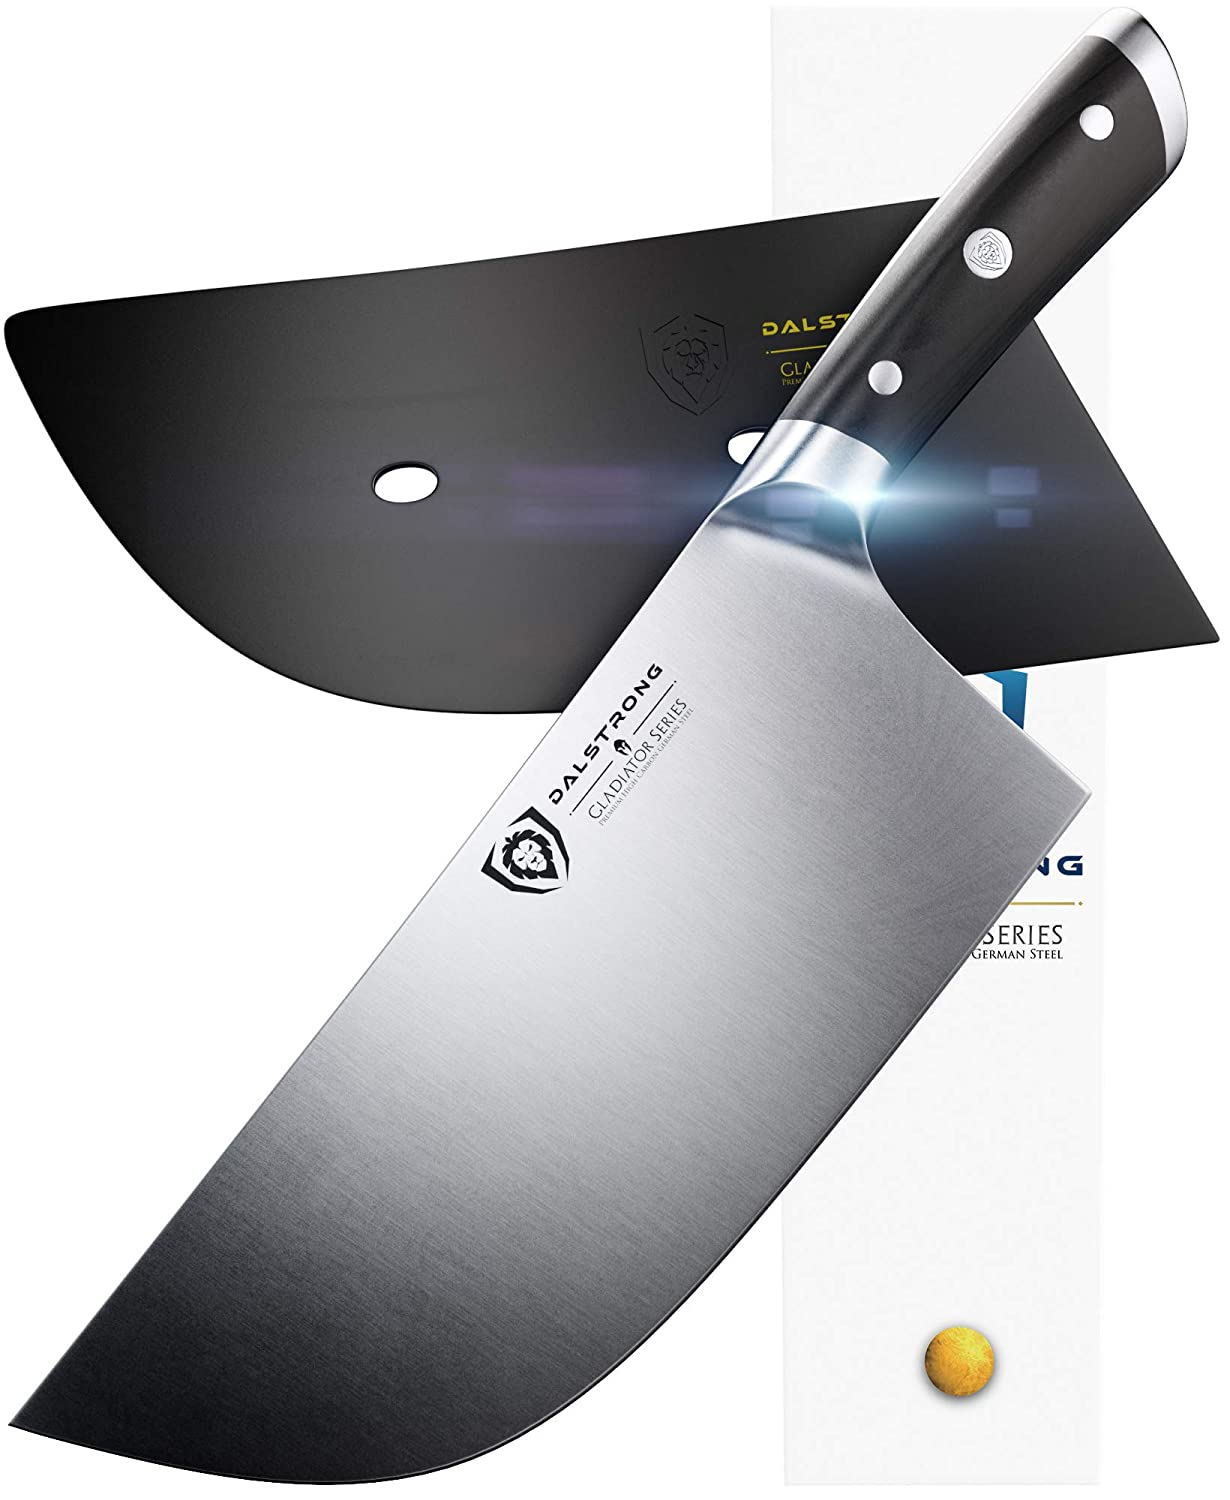 "DALSTRONG Cleaver Butcher Knife - Gladiator Series -""The Ravenger"" - German HC Steel - 9"" - Guard - Heavy Duty"